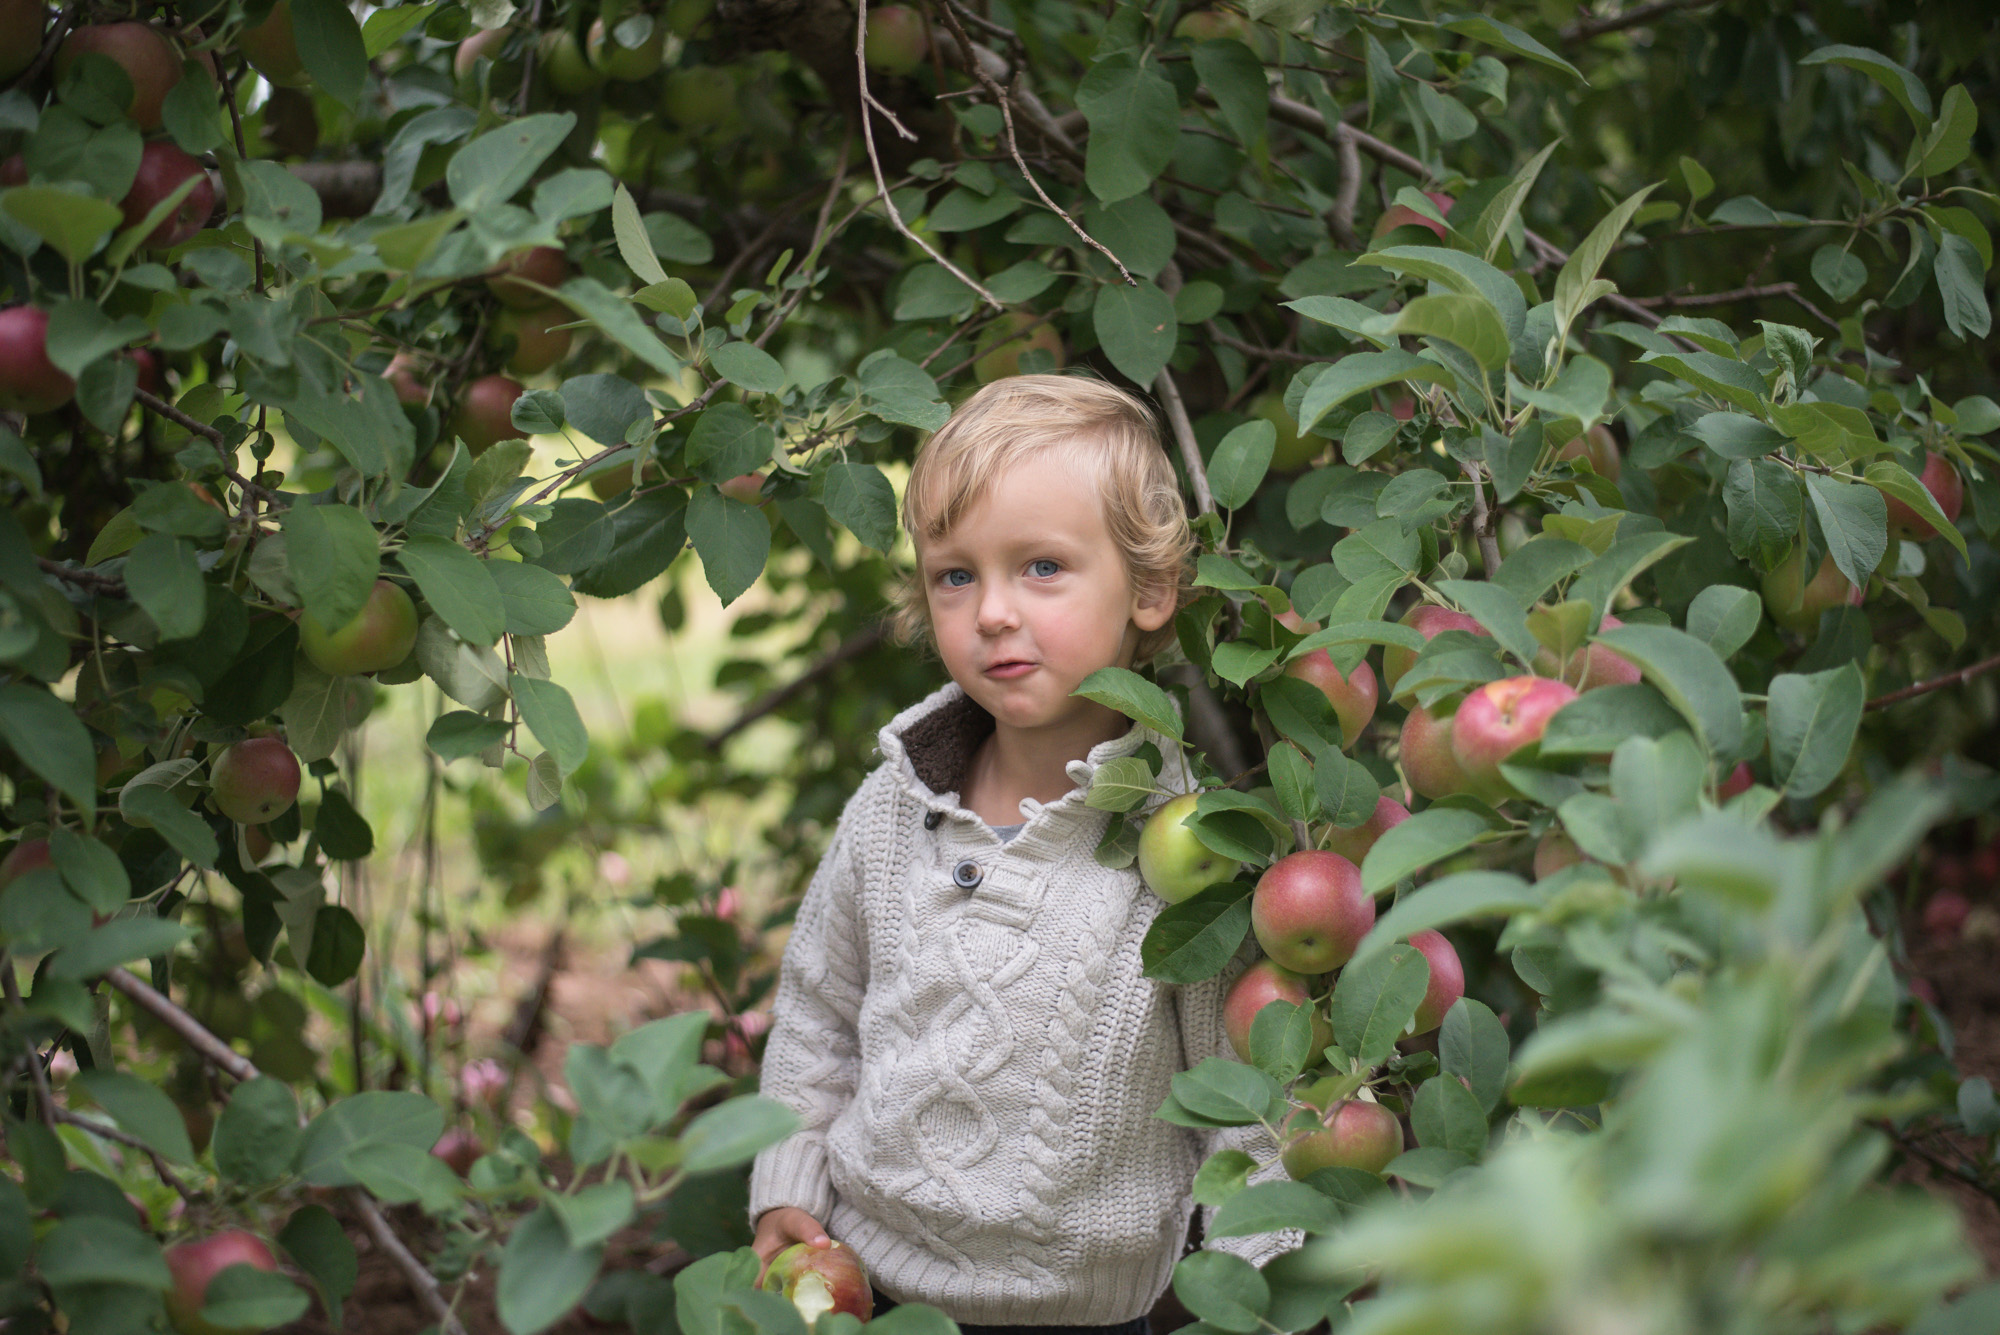 Wild Rosebuds Apple Picking in The Annapolis Valley with her family to celebrate Fall